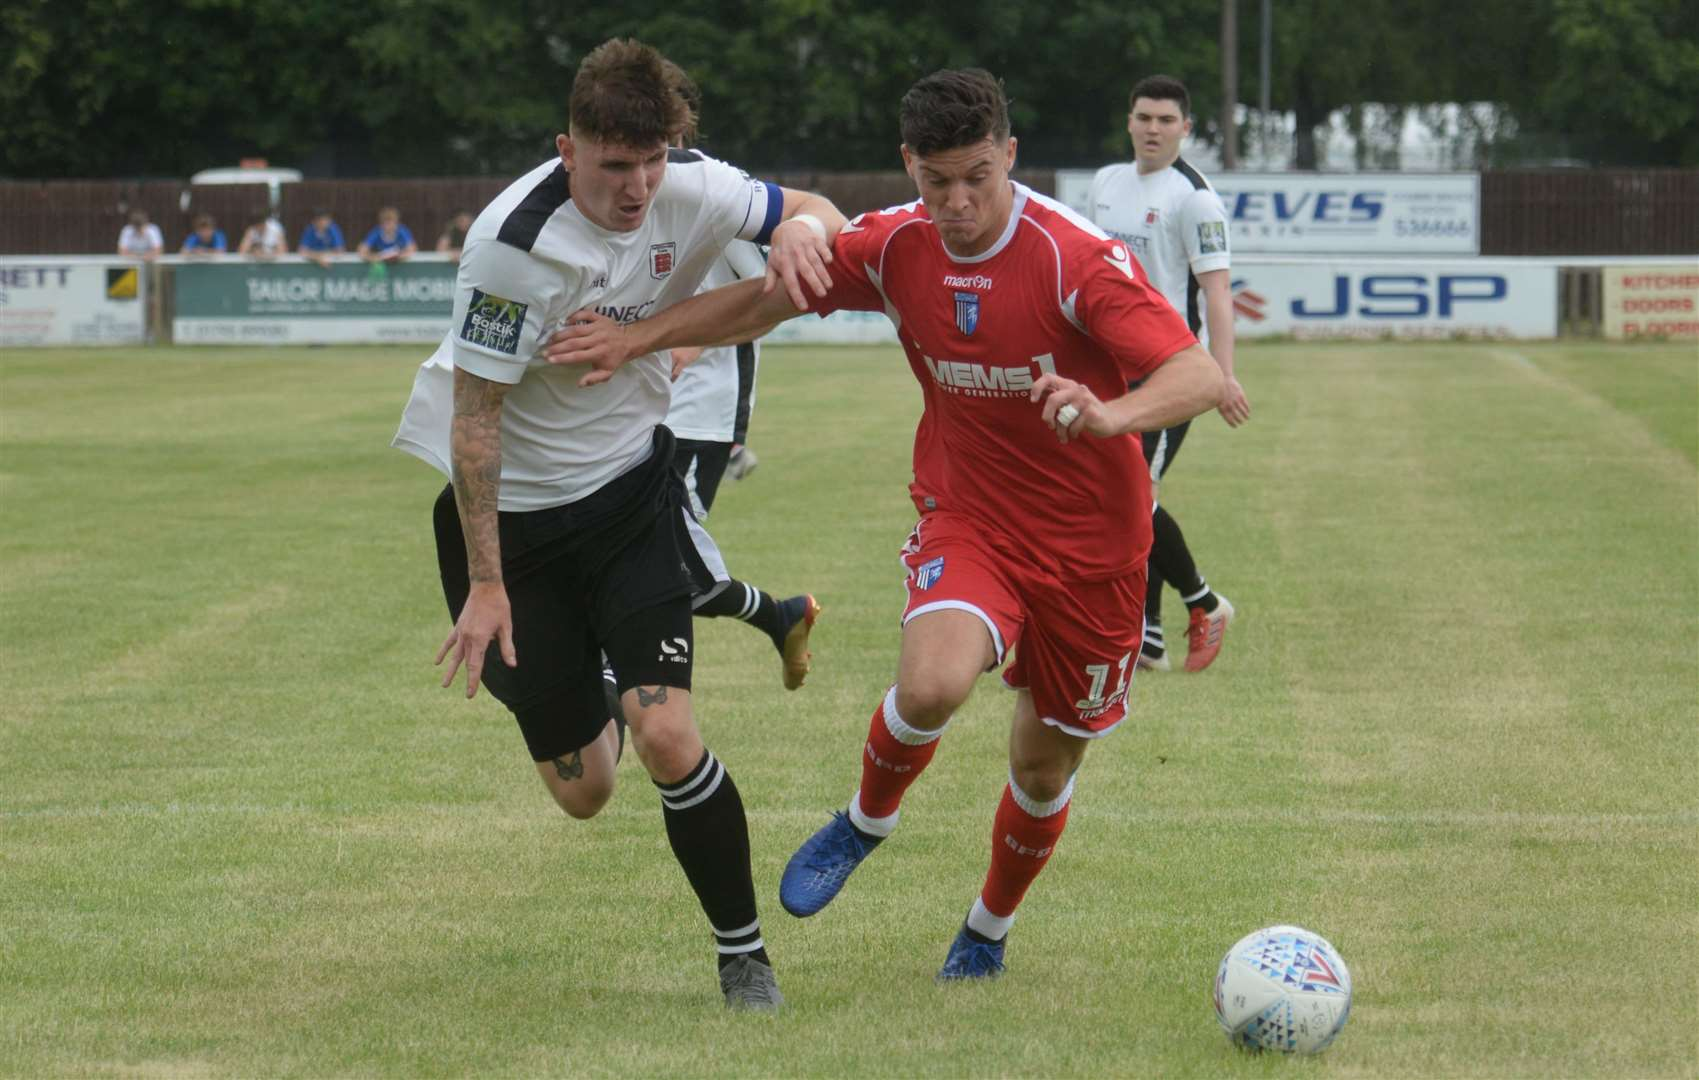 Callum Reilly takes on Faversham captain and former Gillingham player Ryan Huckle Picture: Chris Davey